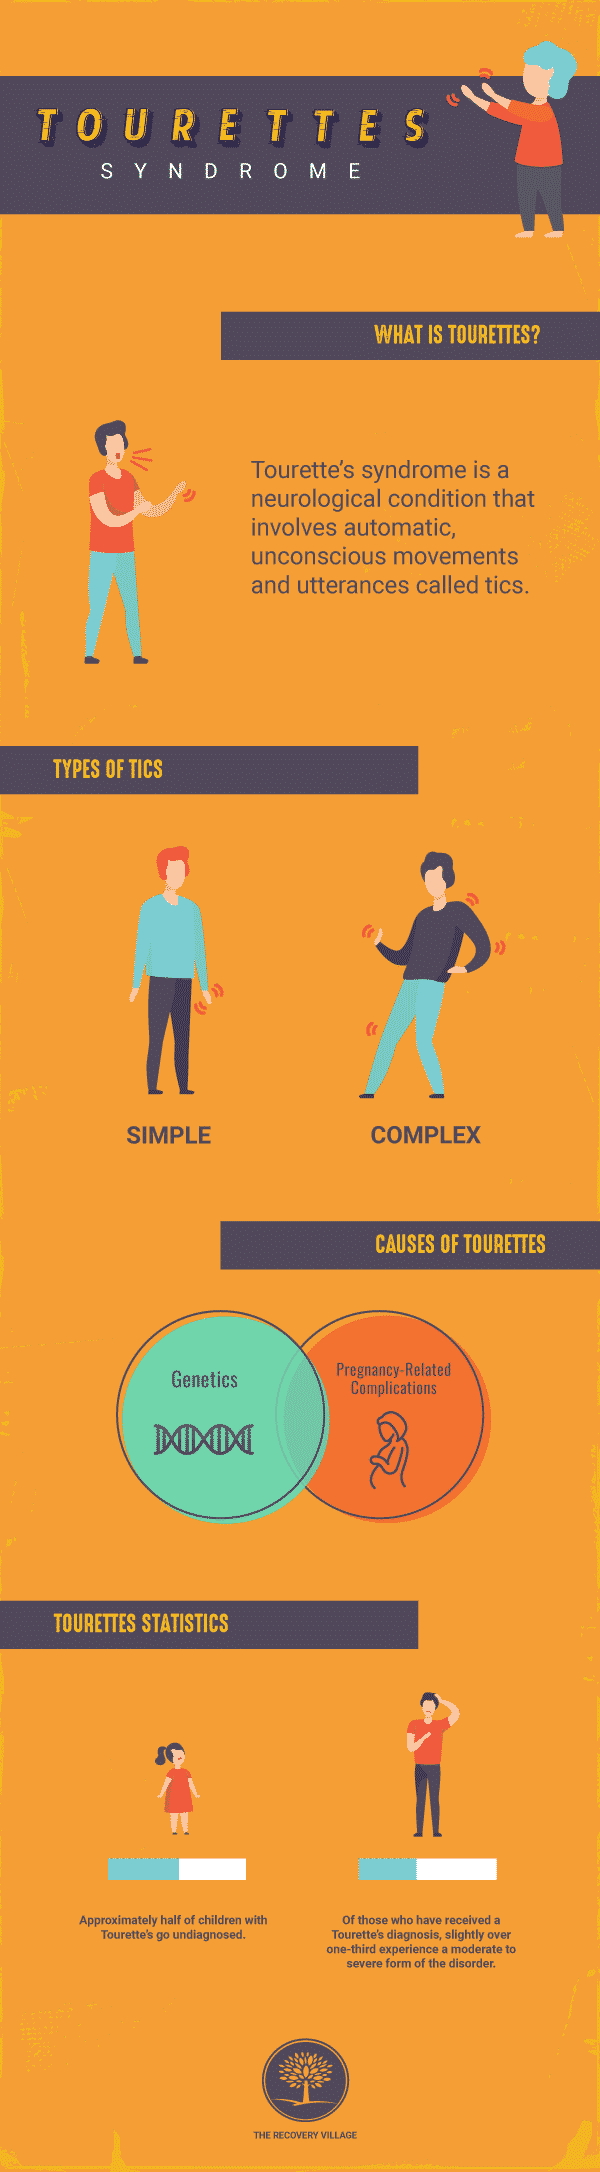 An infographic that details information about Tourettes